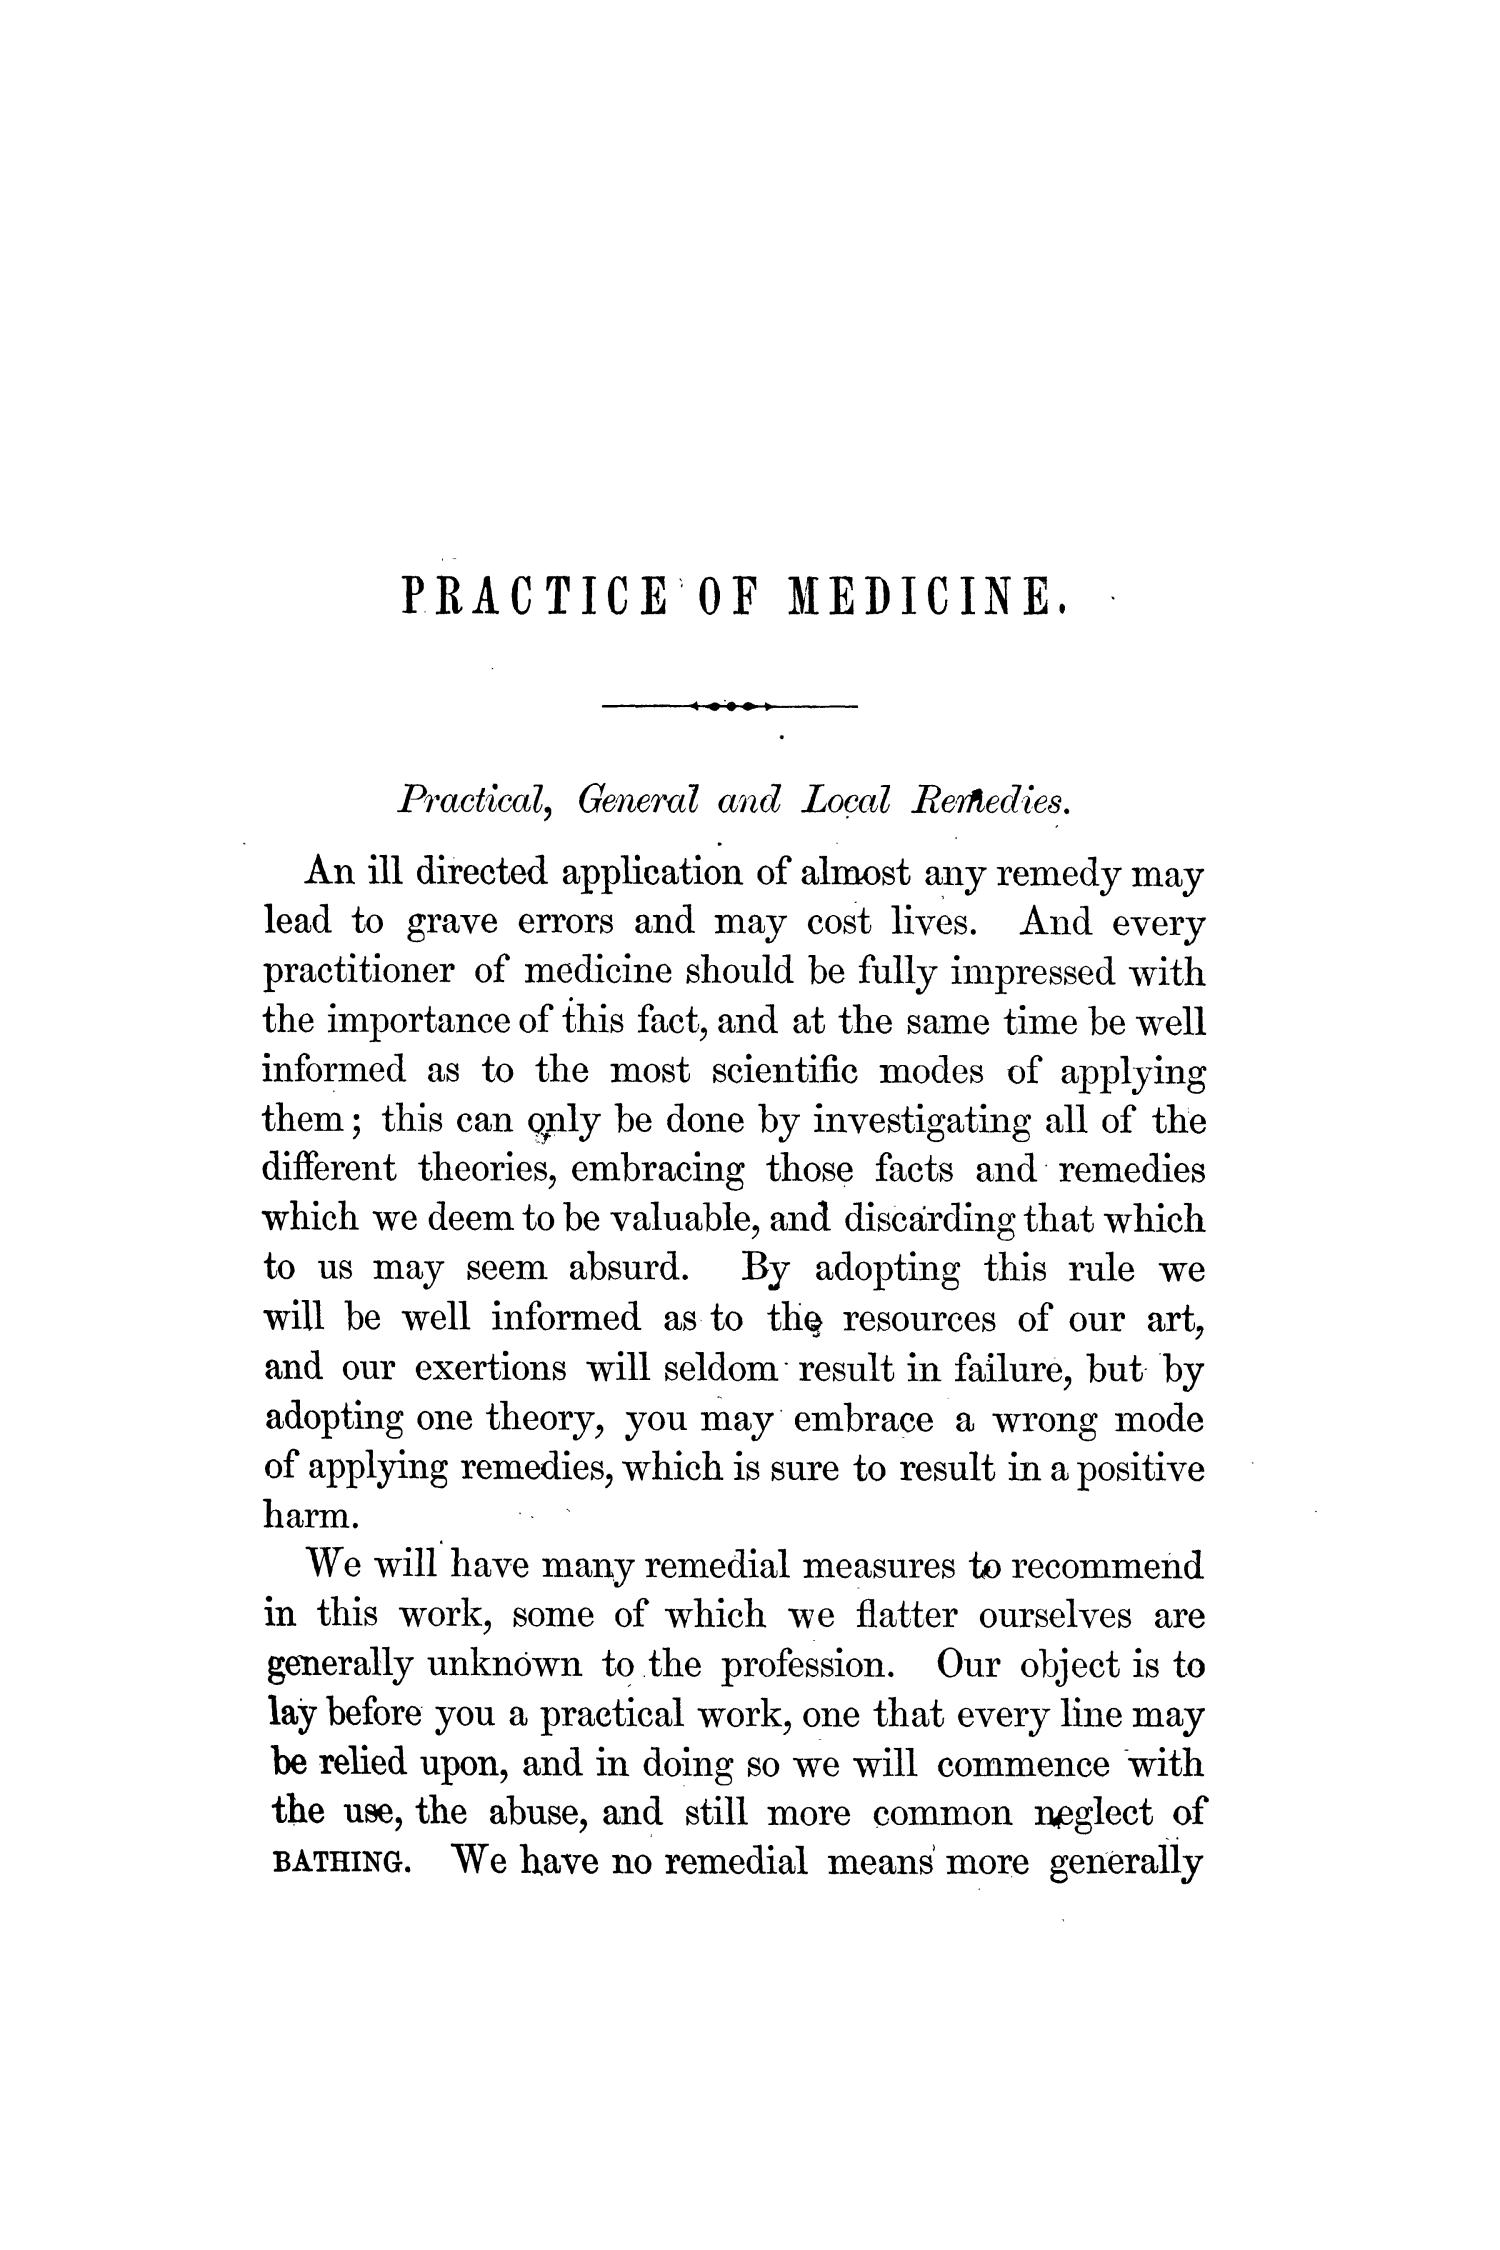 A Treatise on the Eclectic Southern Practice of Medicine                                                                                                      [Sequence #]: 35 of 724